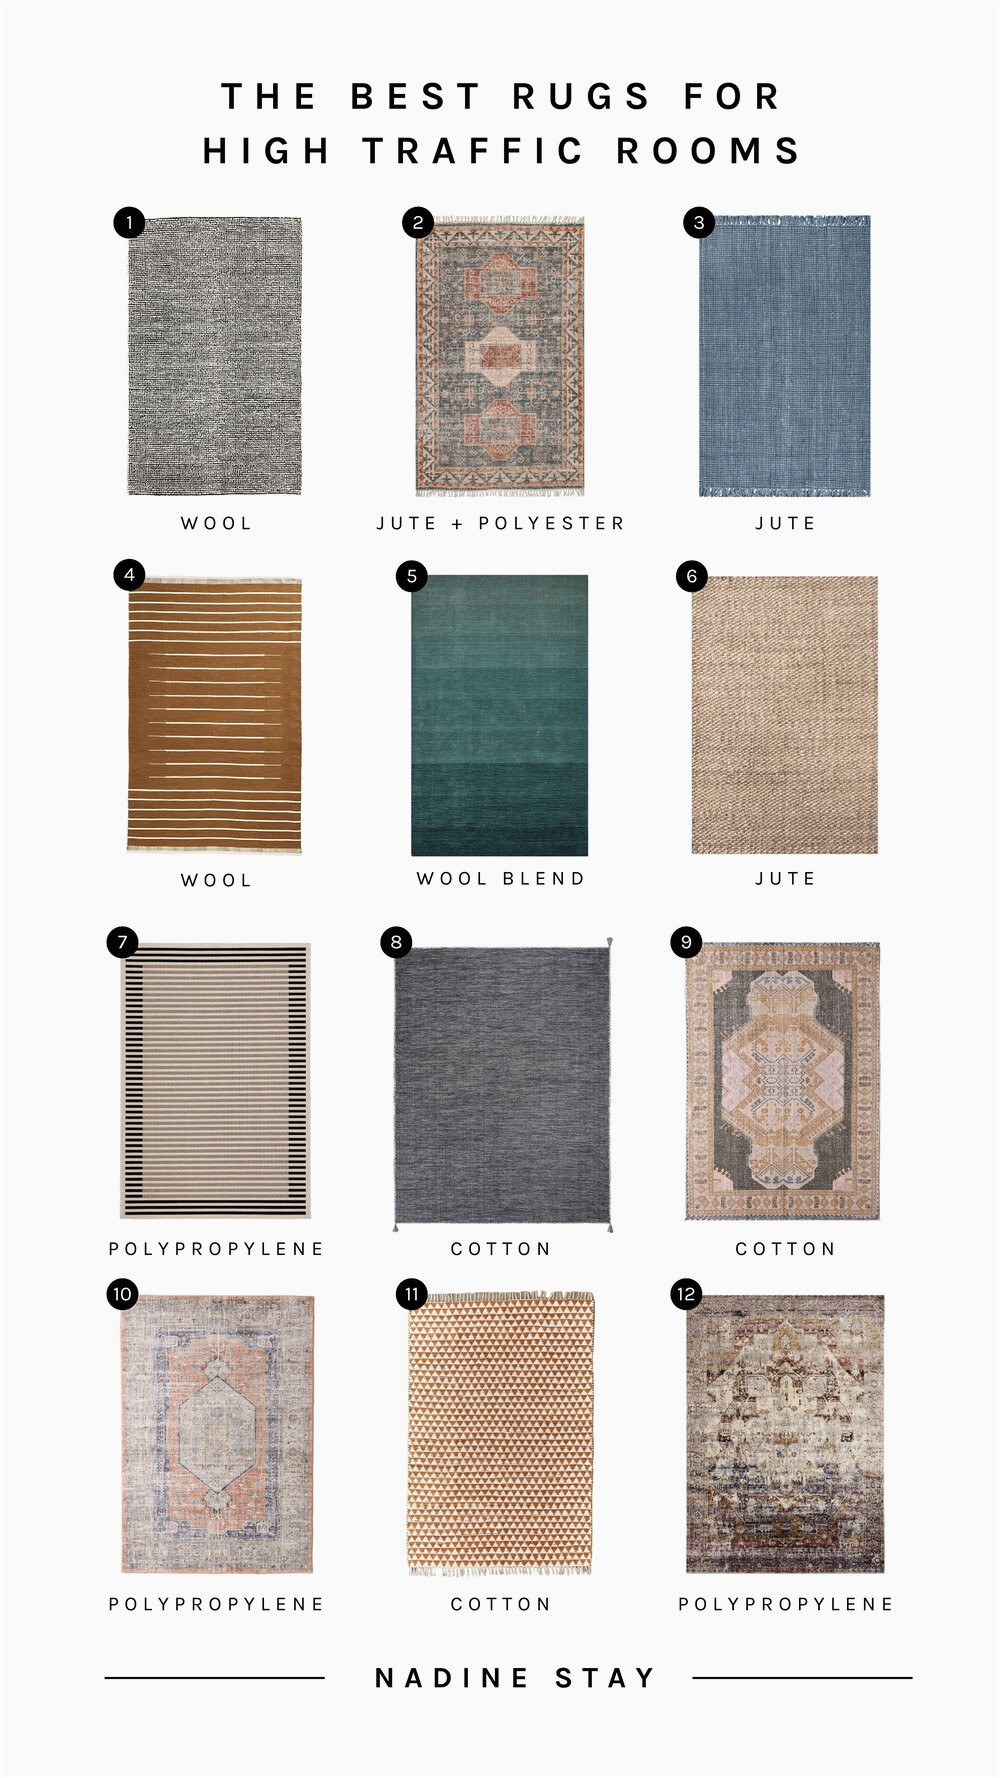 Most Durable Rugs for High Traffic areas the Best Worst Rugs for High Traffic areas